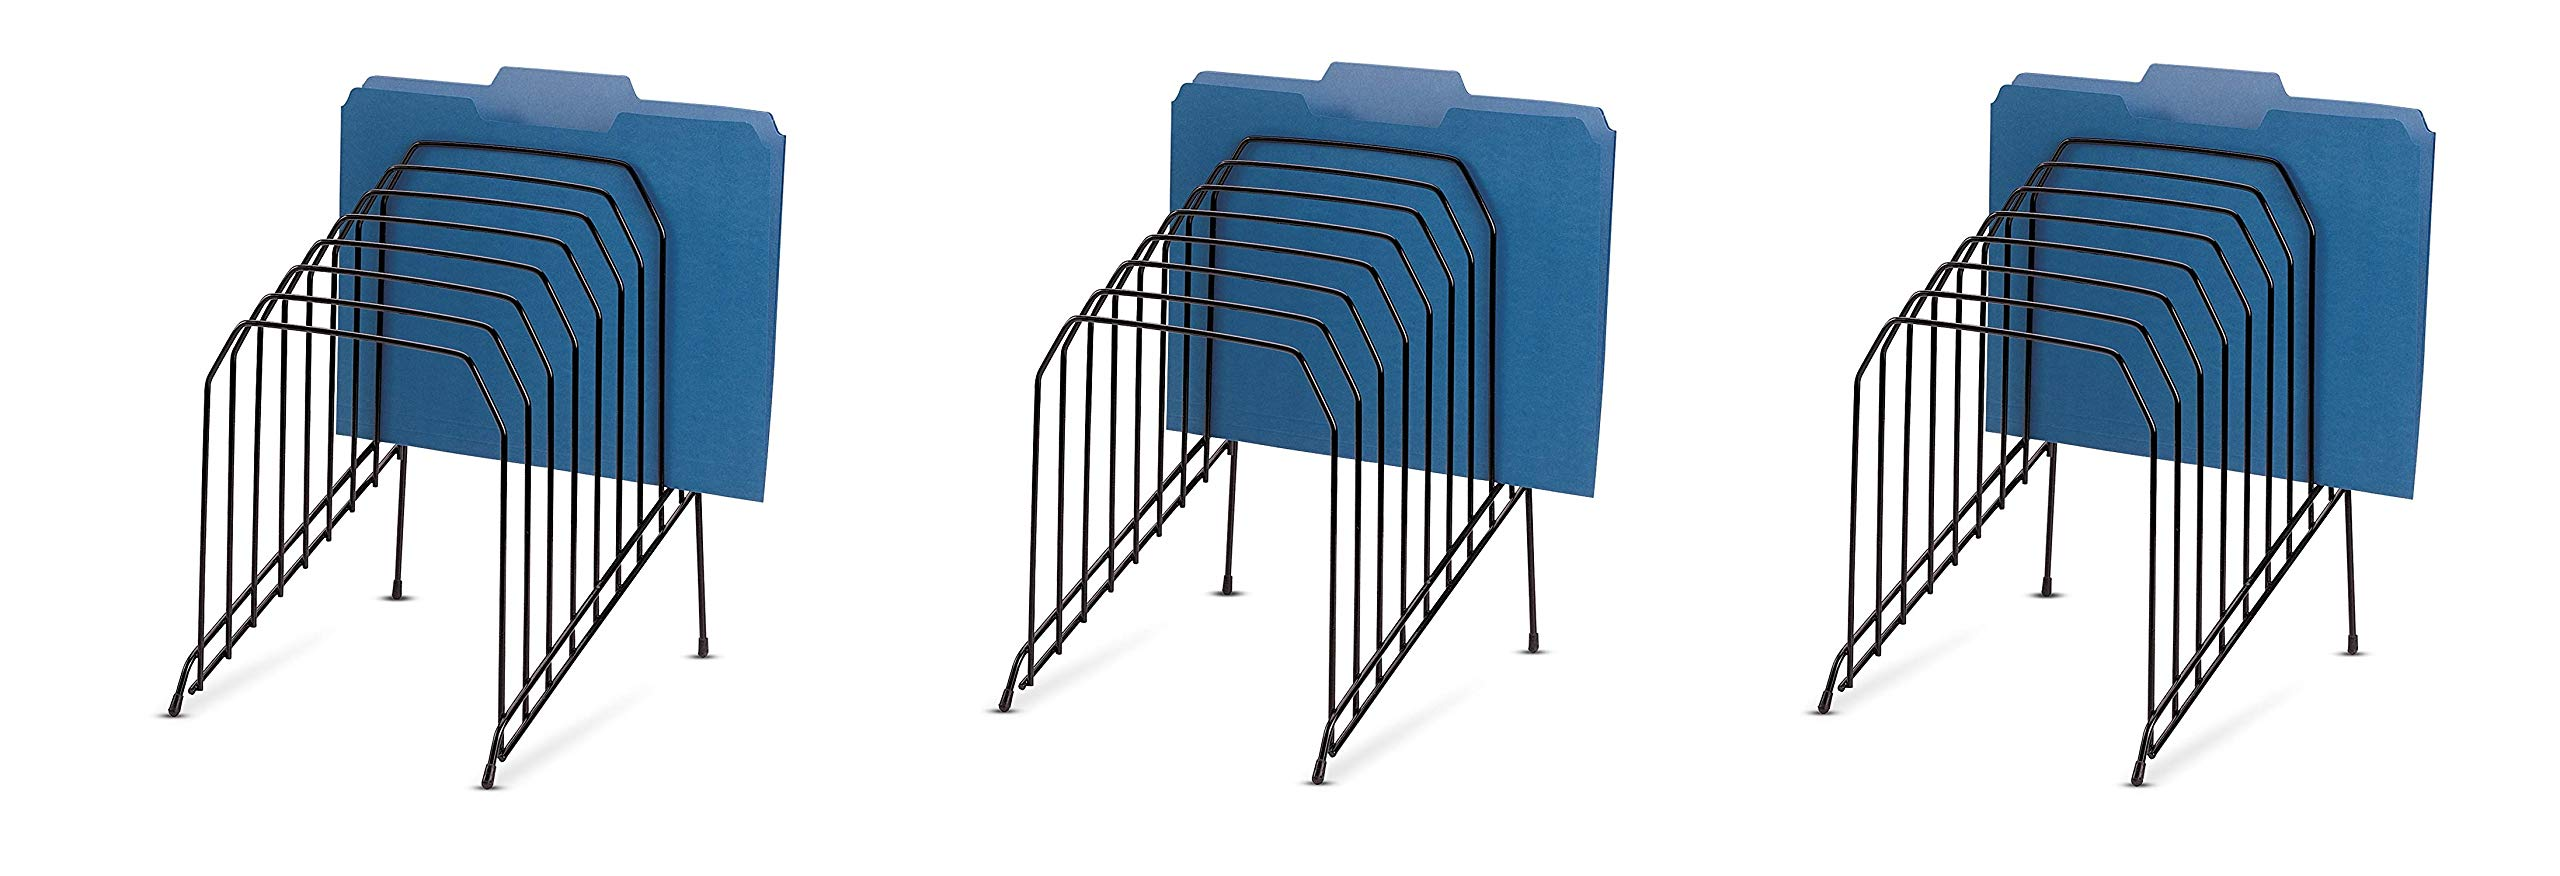 Officemate Large Incline Sorter, 8 Compartment, Wire, 8.5 x 10.375 x 12.625 Inches, Black (25212) (Pack of 3)